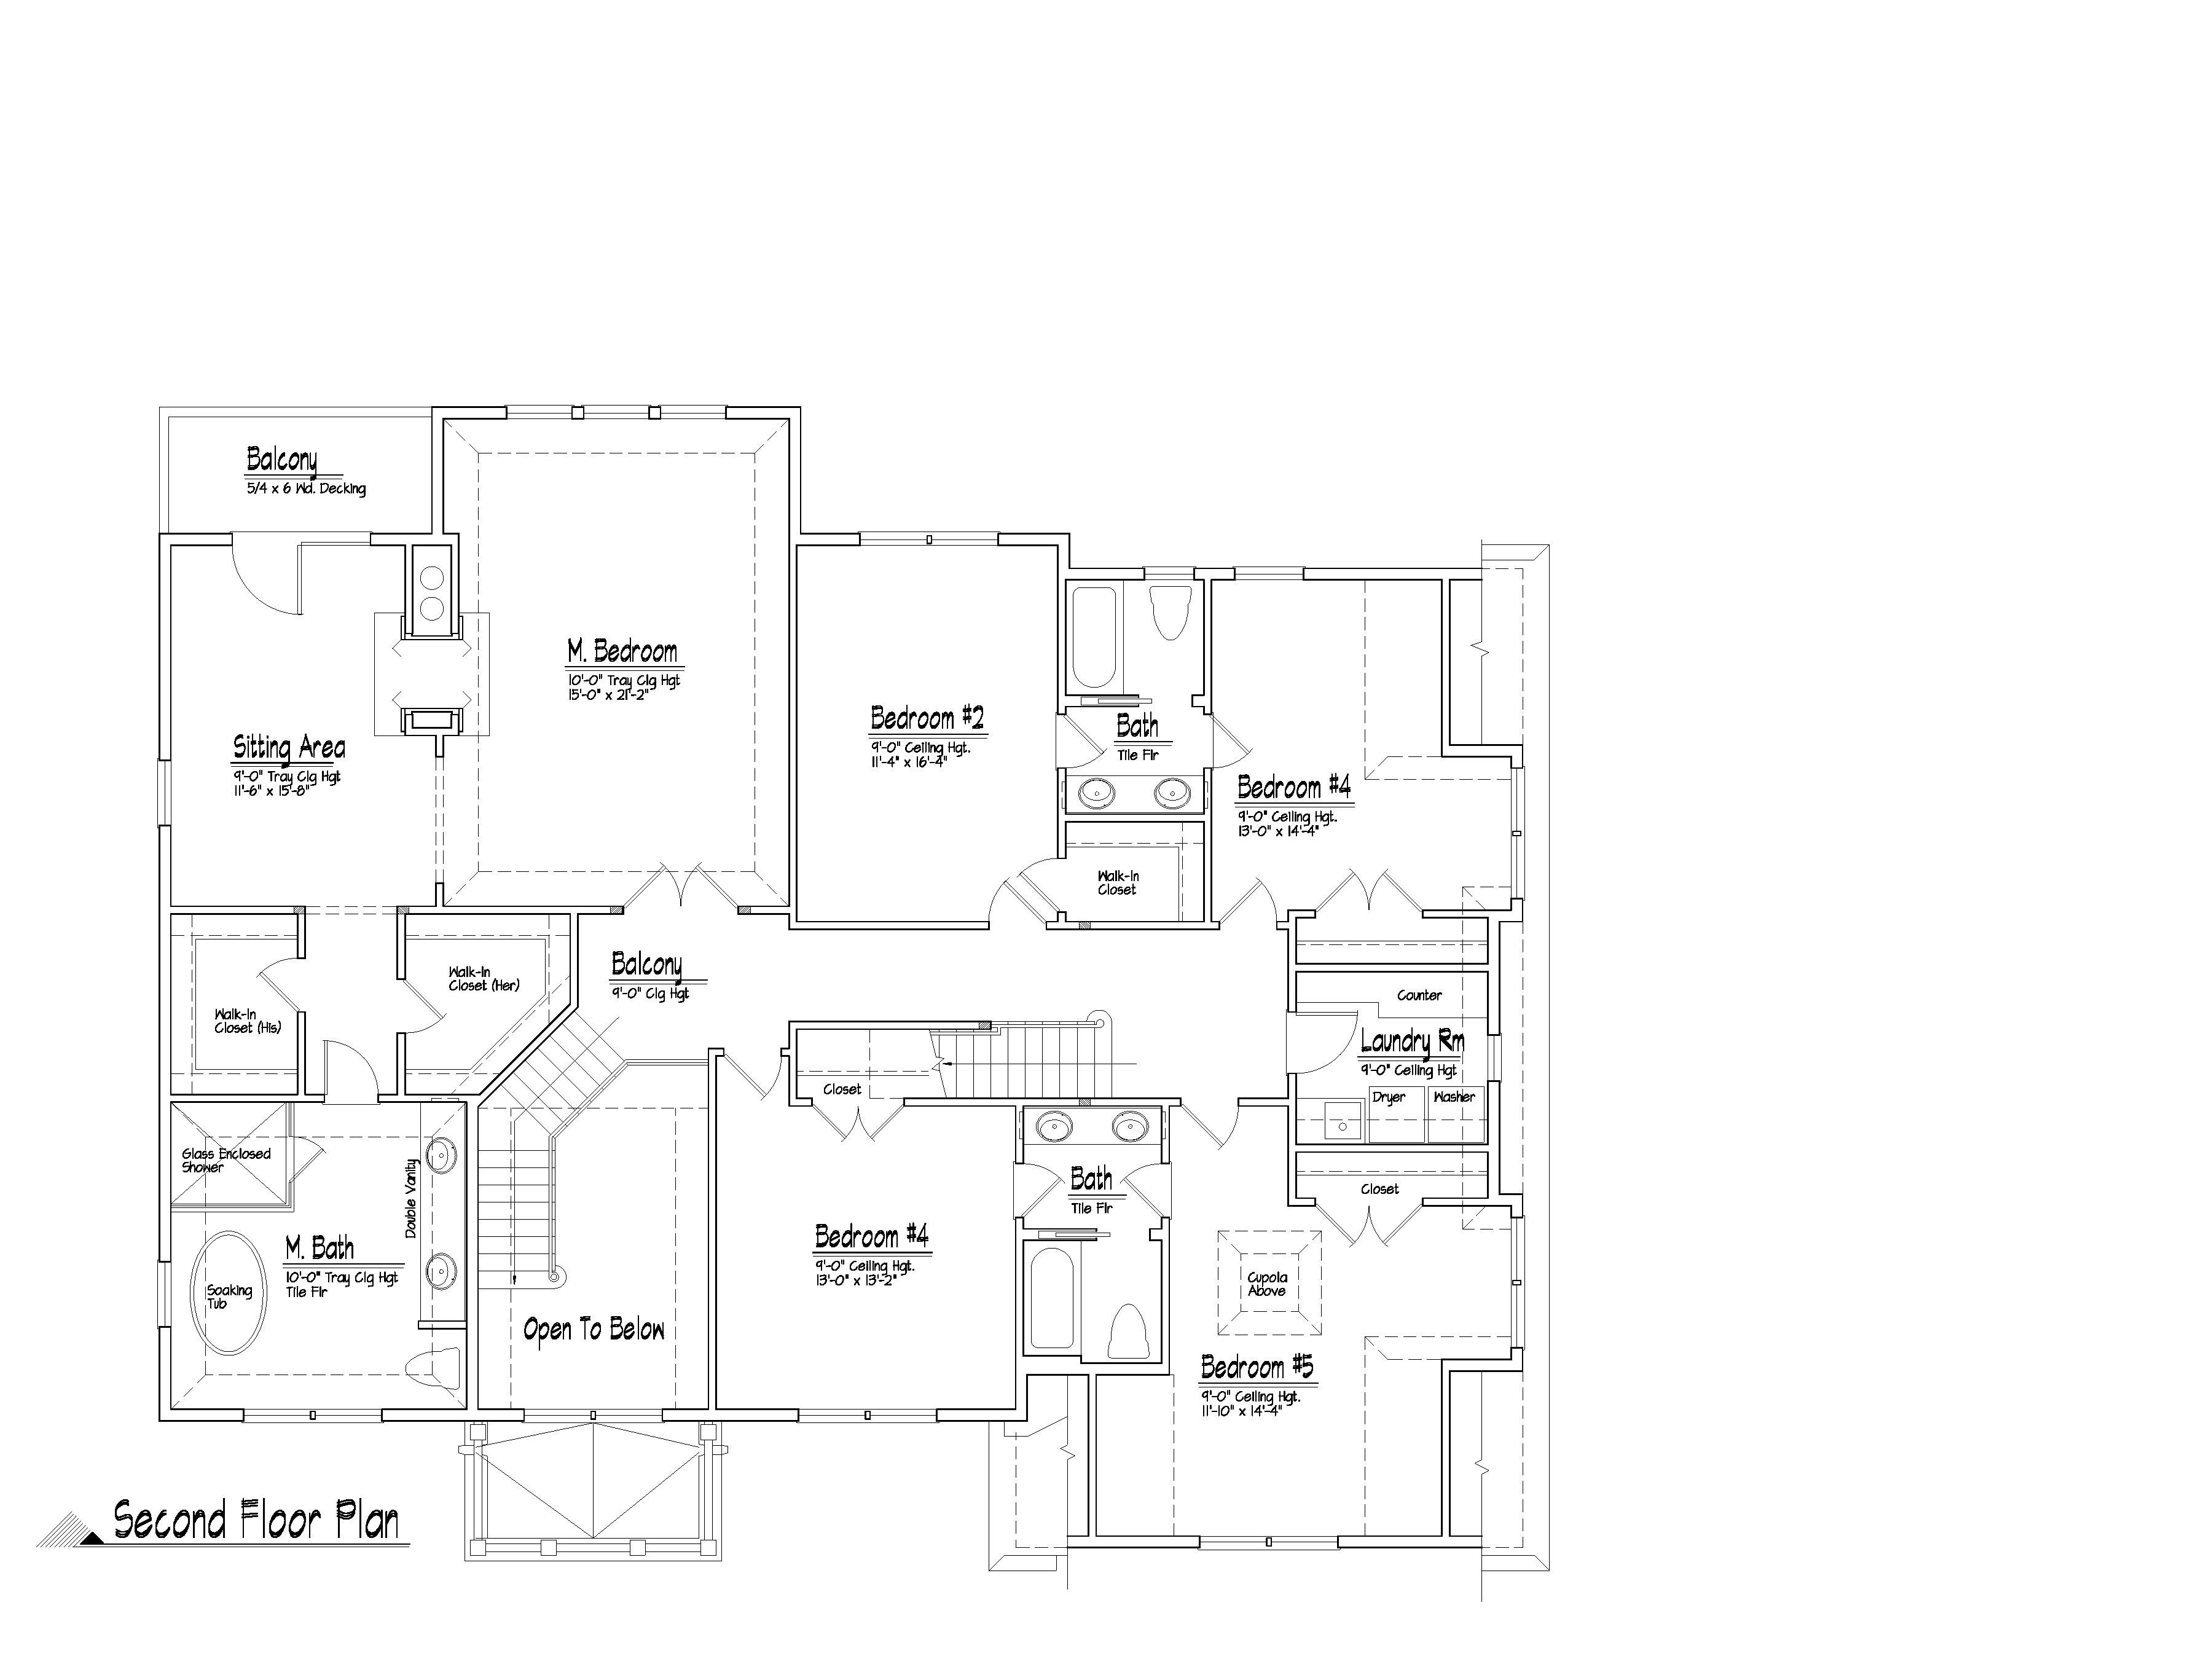 2nd Floor Plan For 55 Greendale New Home By The Illustrustrious Cupola Schematic Matthew Miller 914 723 5555 Inqu Our Current Homes Condos Co Ops Rentals